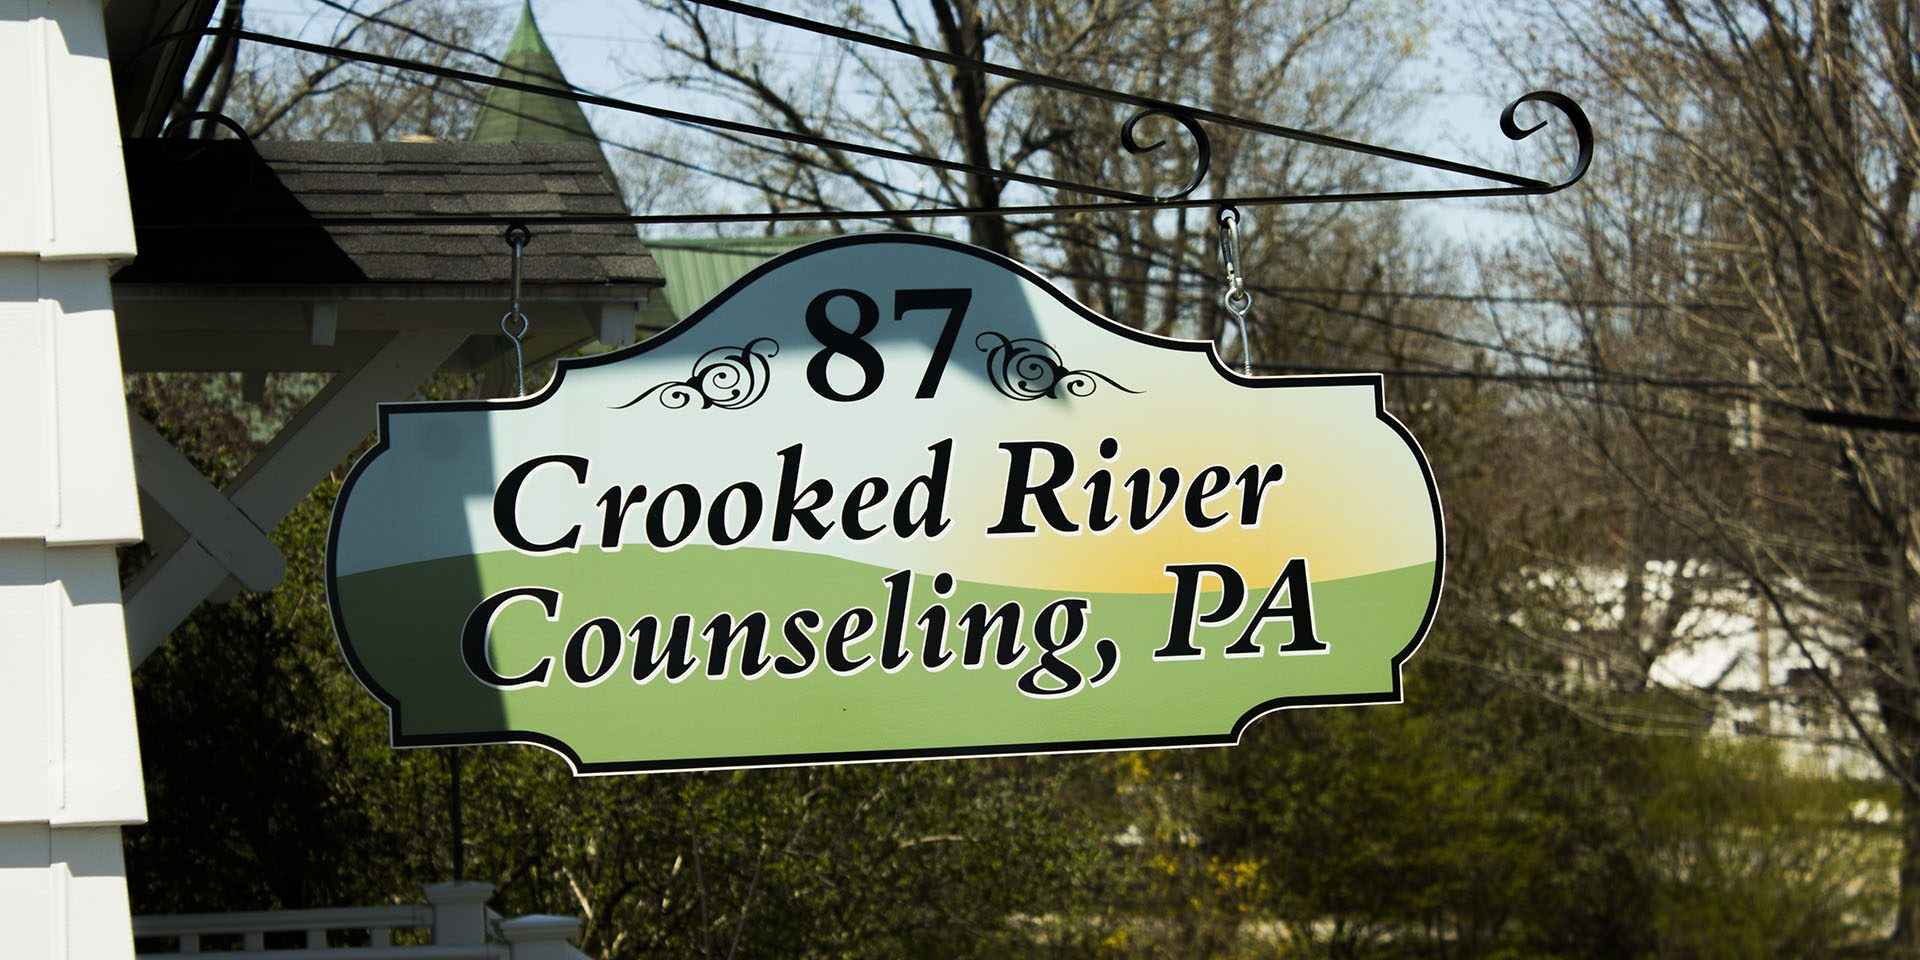 Crooked River Counseling - Bridgton, ME 04009 - (207)647-5600 | ShowMeLocal.com